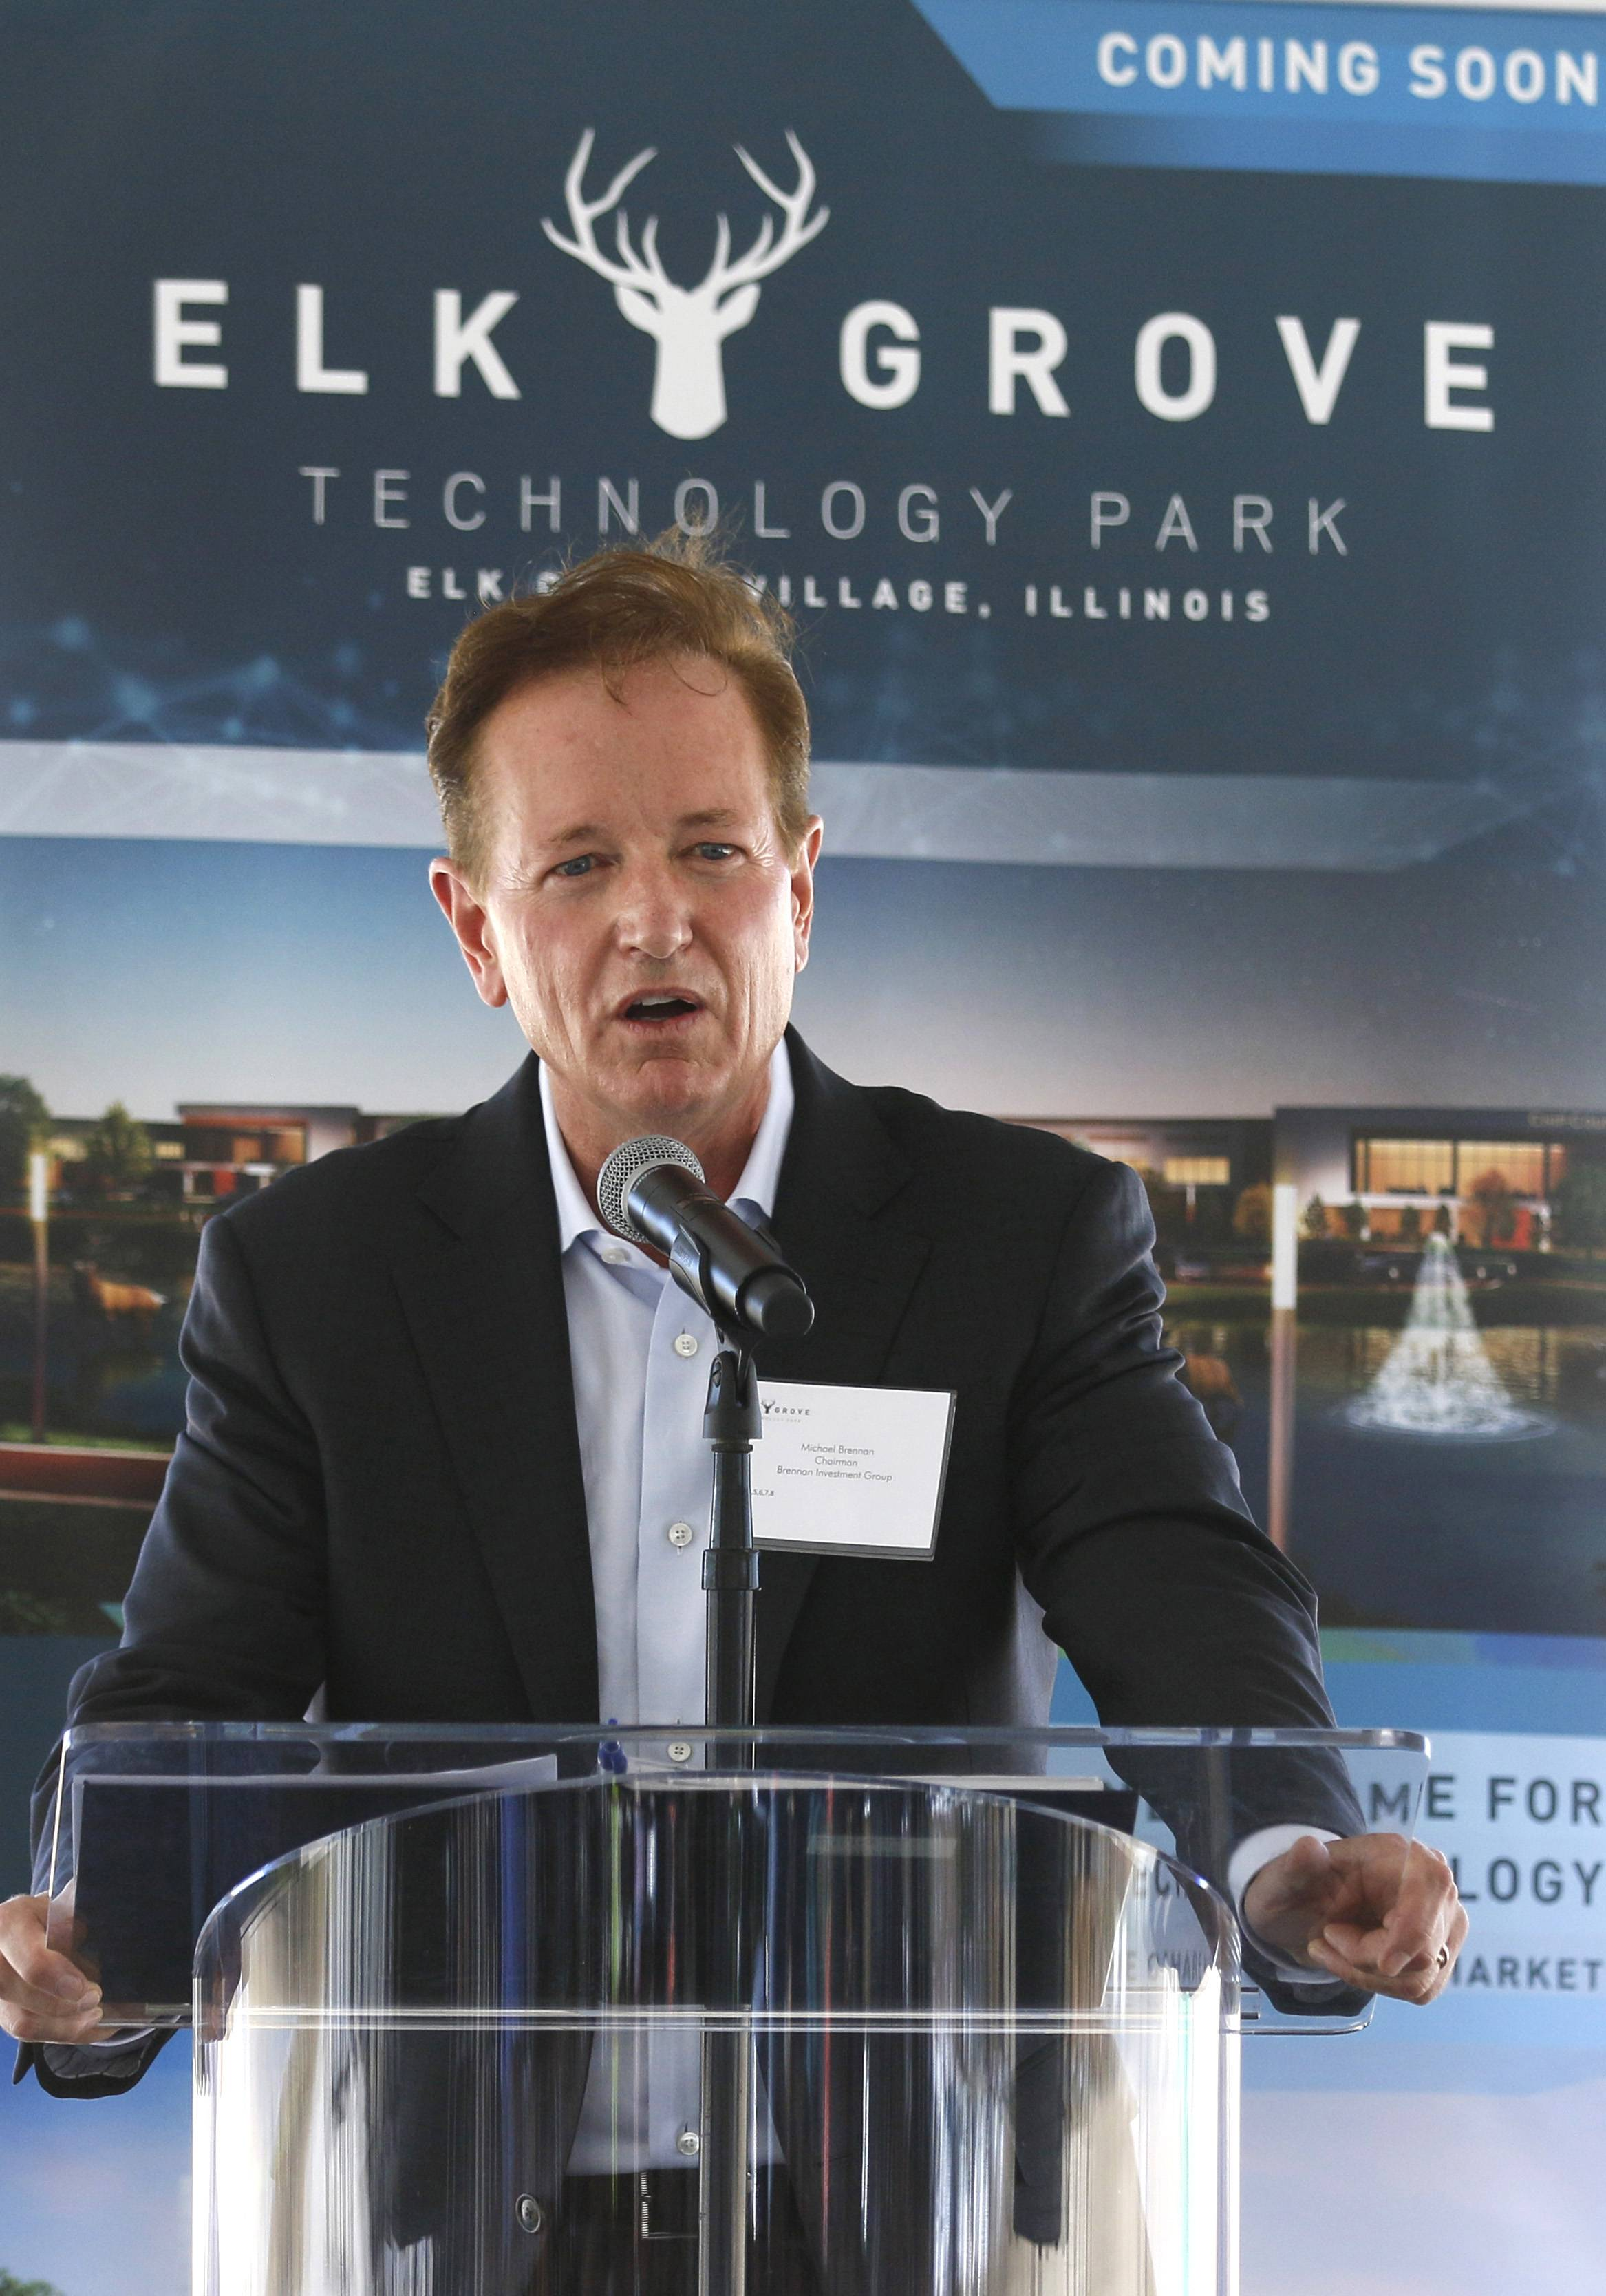 Michael Brennan, chairman of the Brennan Investment Group, talks about the new $1 billion Elk Grove Technology Park. Groundbreaking for the huge project took place Wednesday.